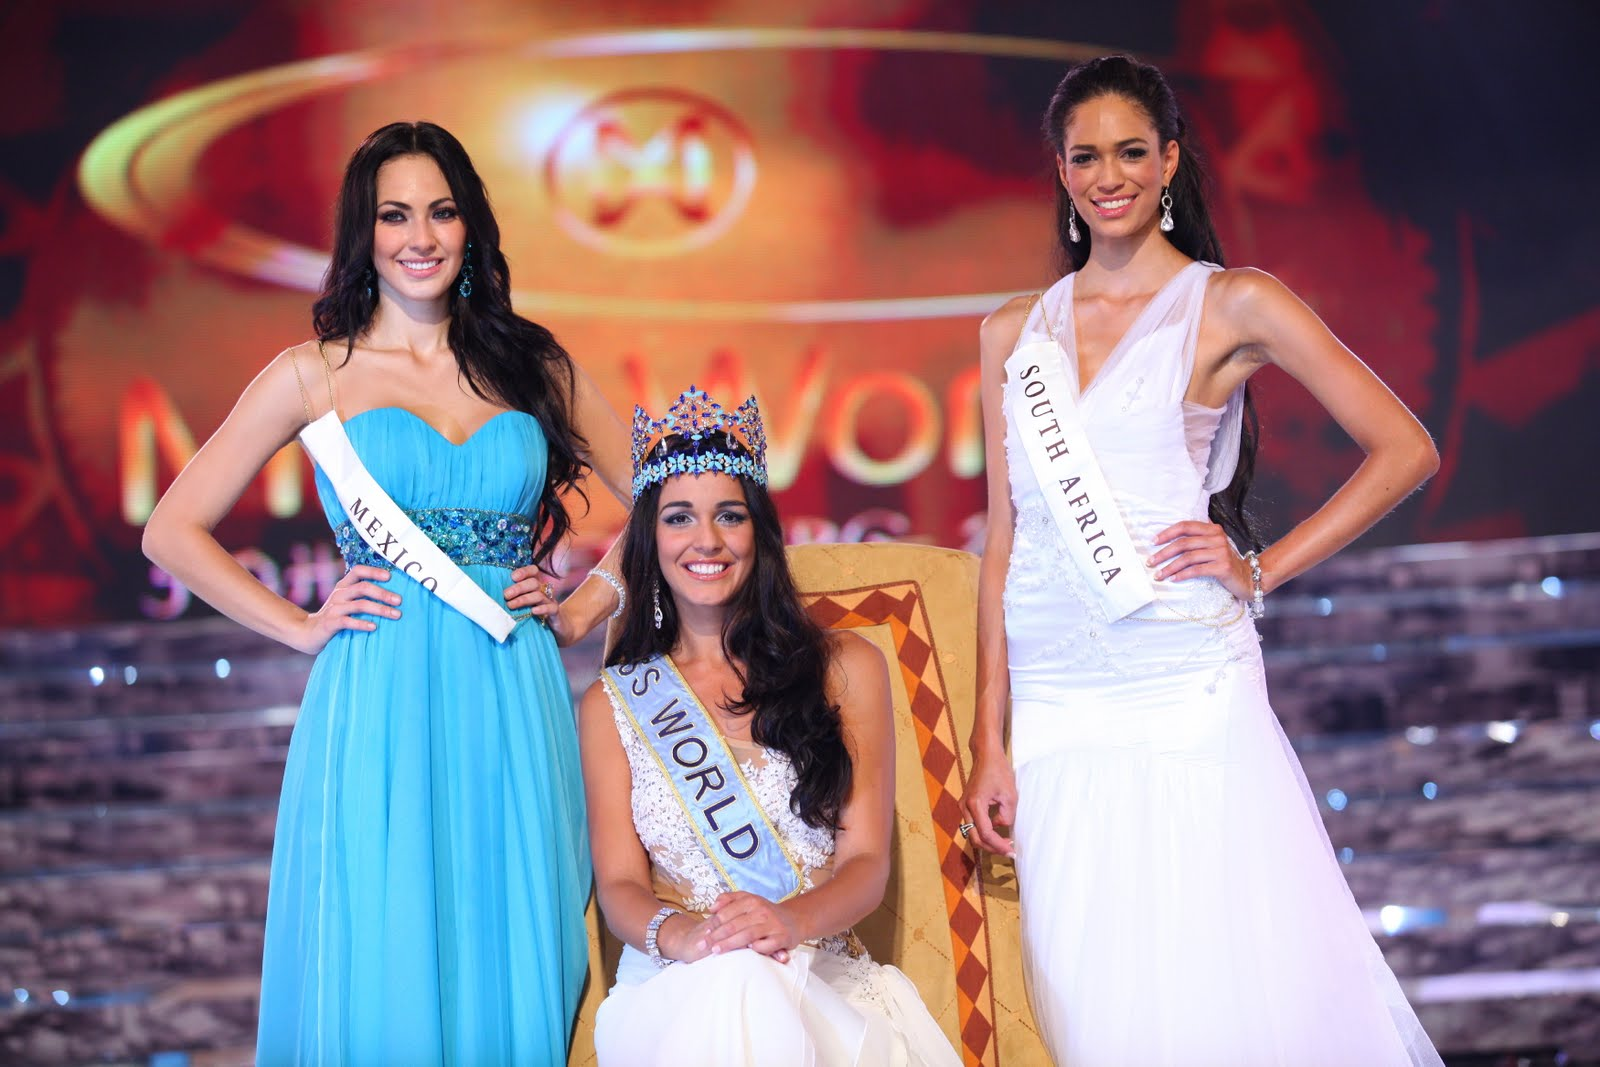 Aldorino - Kaiane Aldorino - Miss World 2009- Official Thread (Gibraltar) Mwcrow11